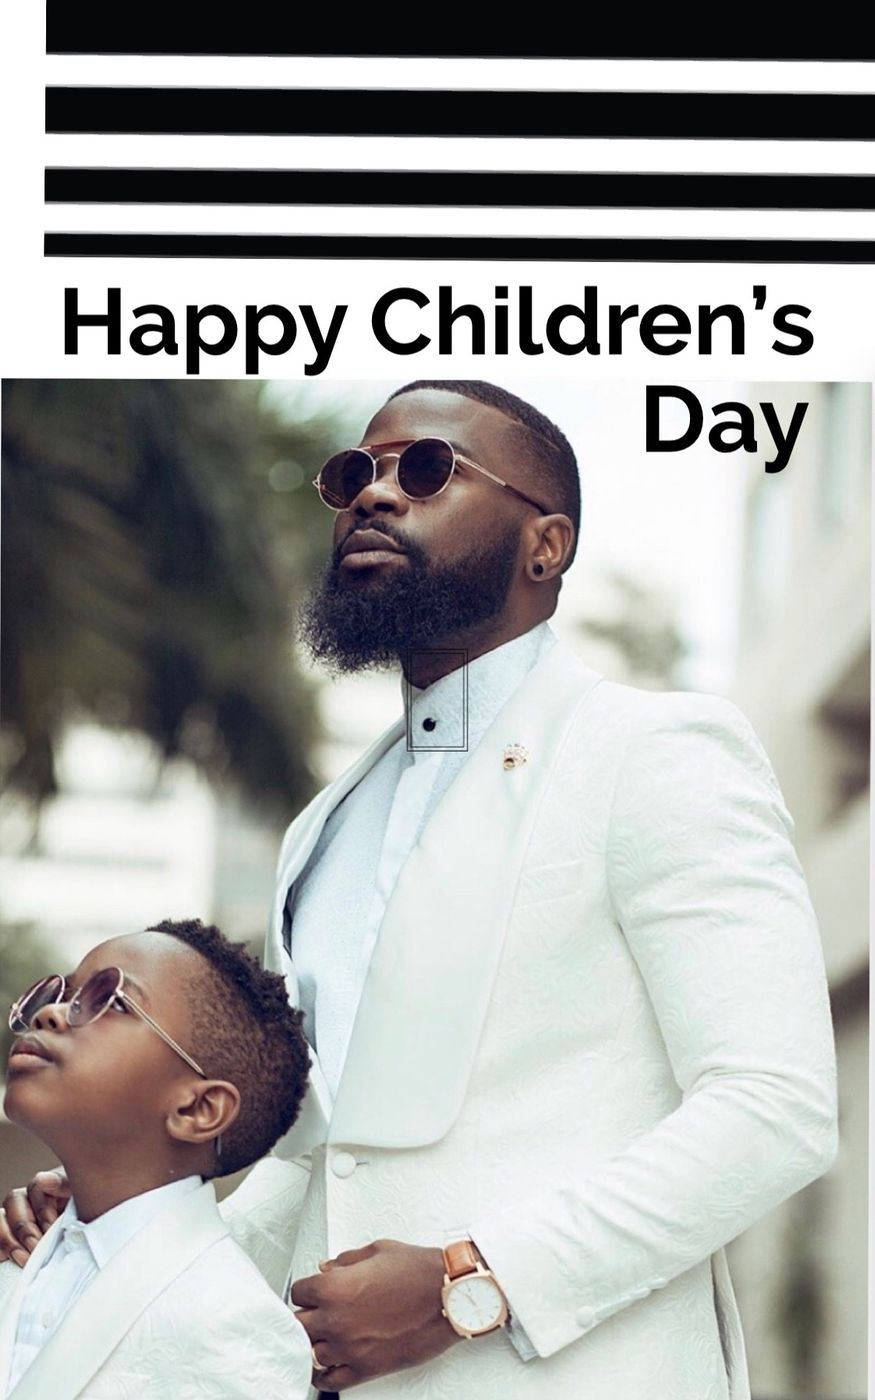 Happy Children's Day by WIBA